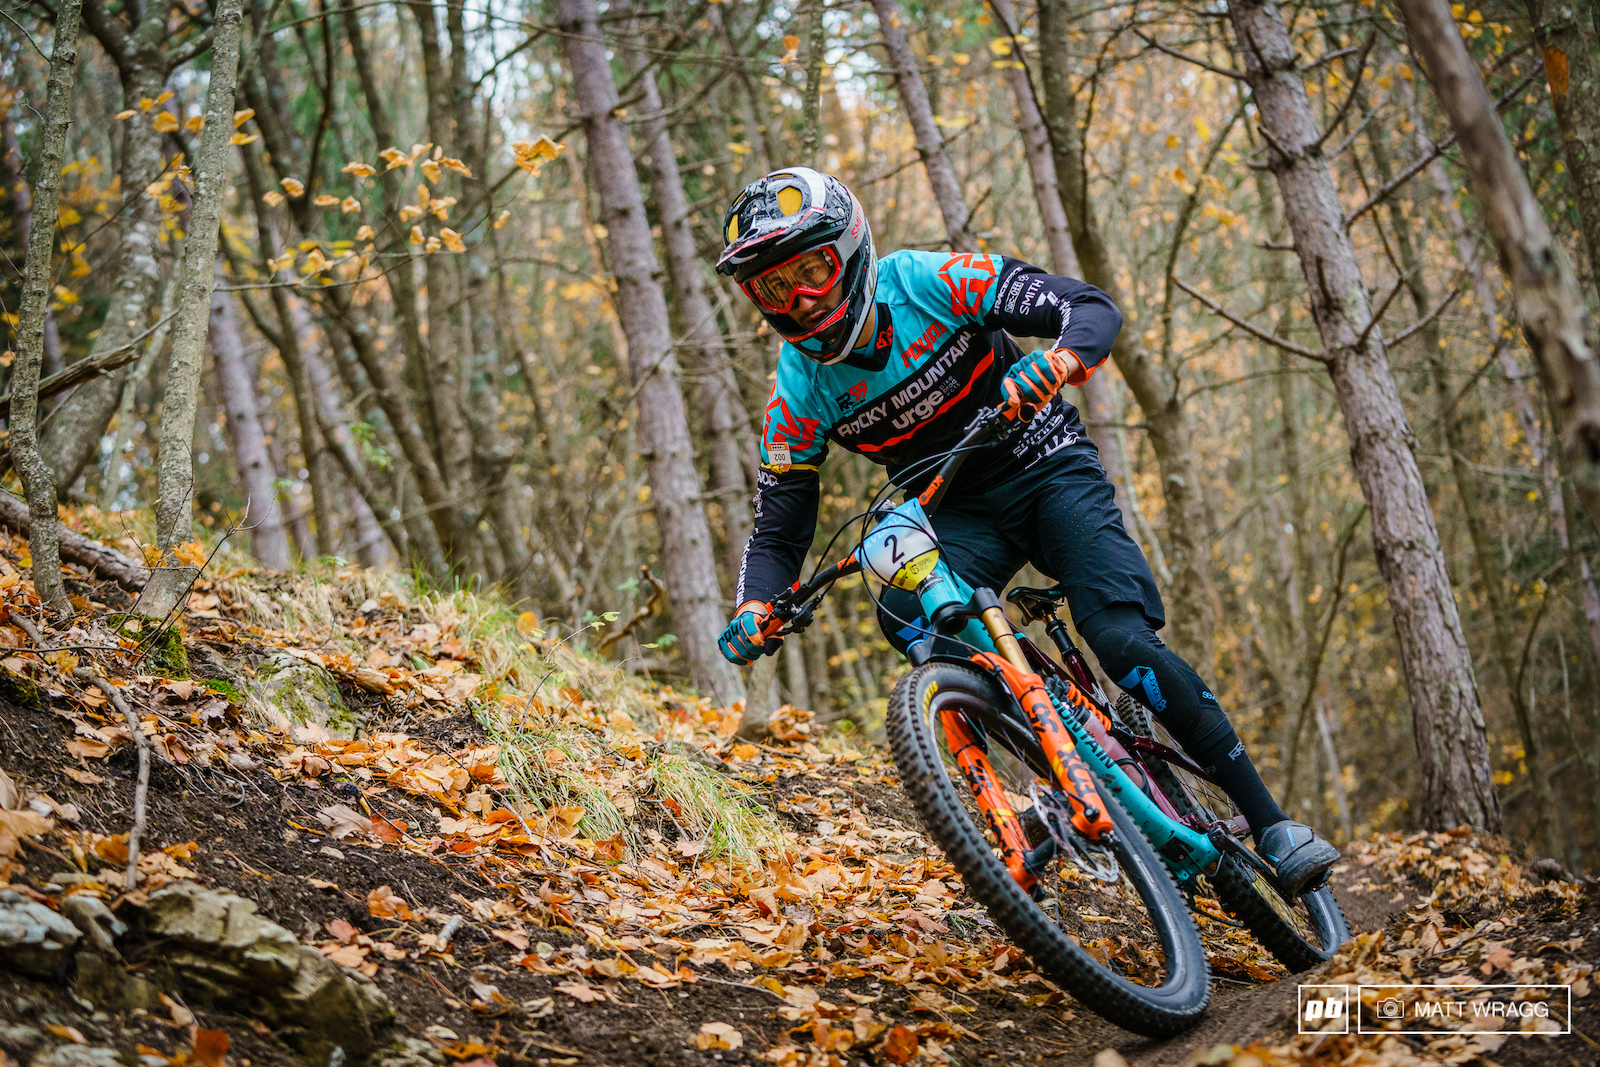 Flo Nicolai didn t have the smoothest day racing and with the EWS done and dusted he is in wind-down mode right now but he still comfortably took second against the stacked field.